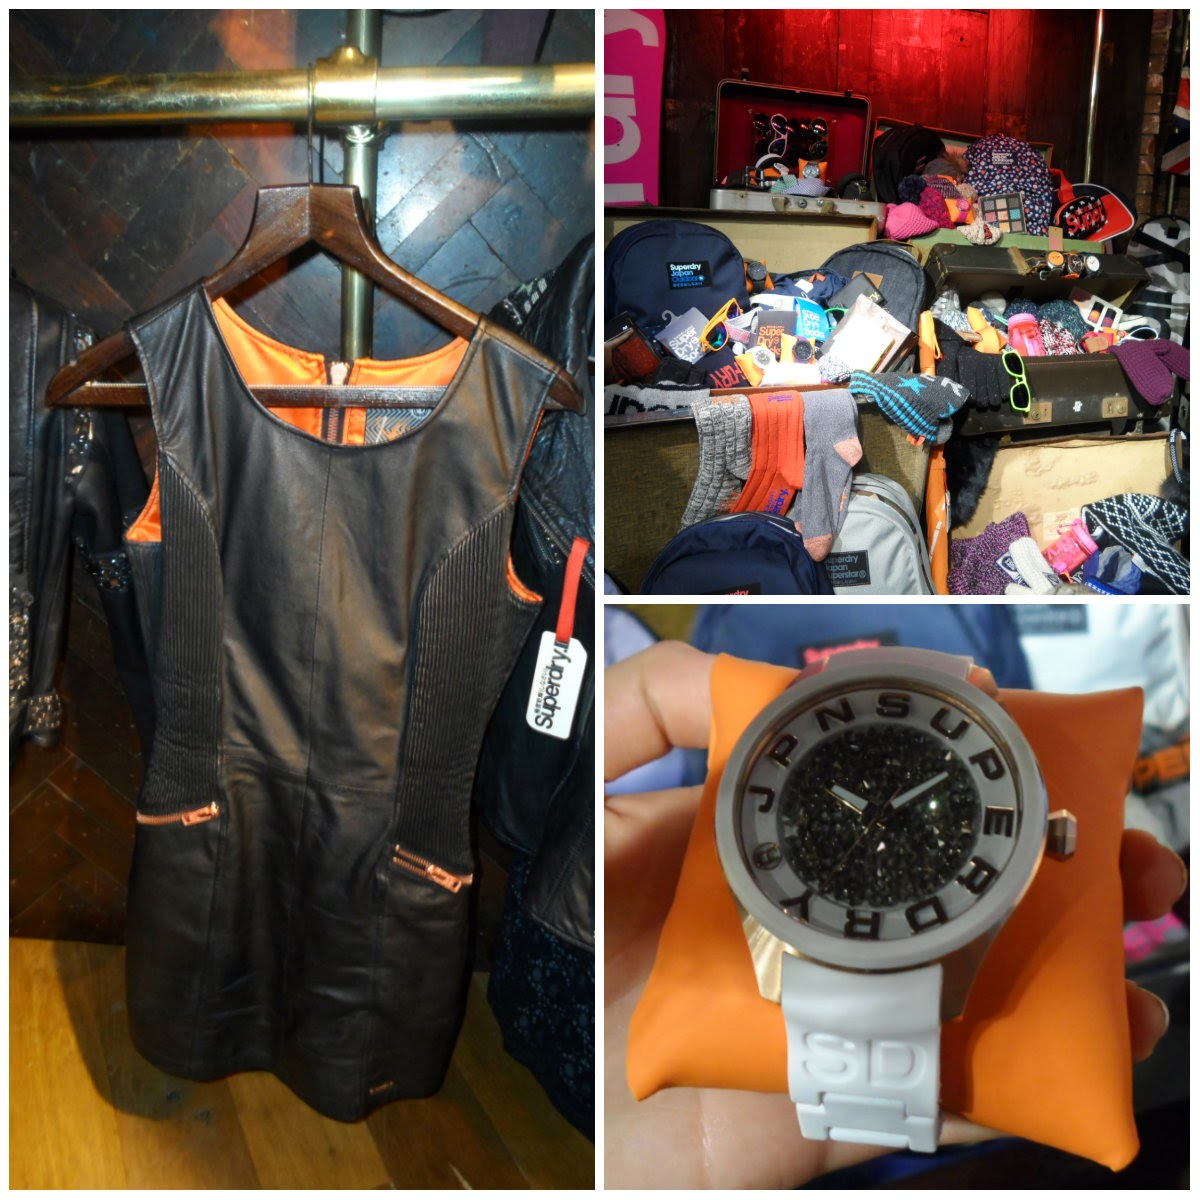 SUPERDRY CHRISTMAS IN JULY AT THE REGENTS STREET STORE